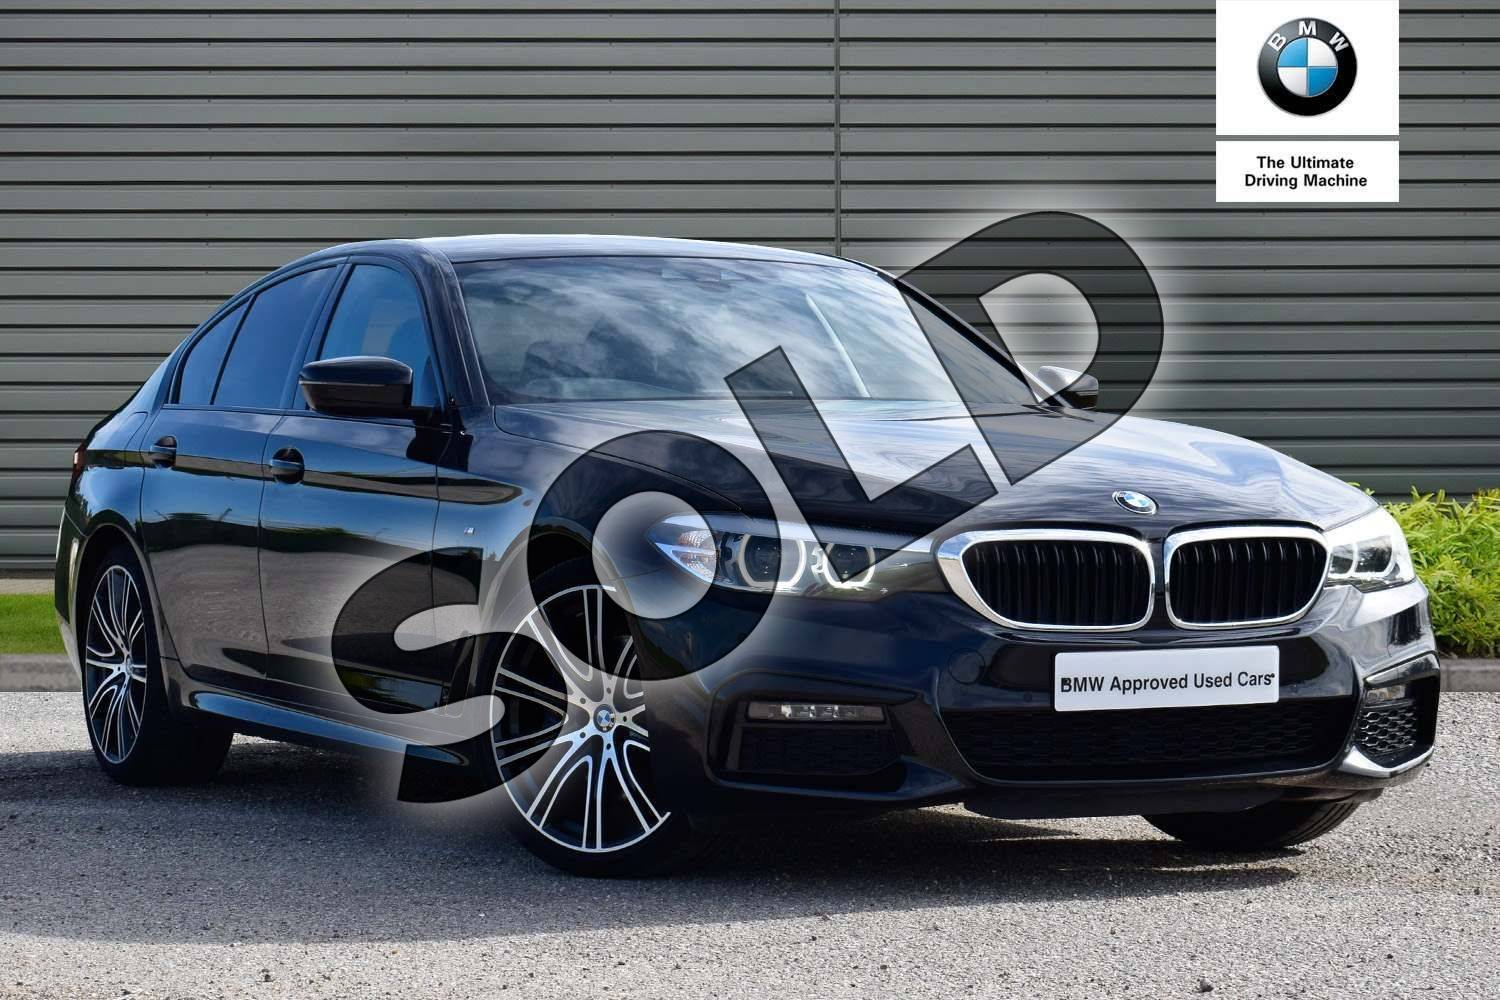 2018 BMW 5 Series Saloon 530i M Sport 4dr Auto in Black Sapphire metallic paint at Listers Boston (BMW)